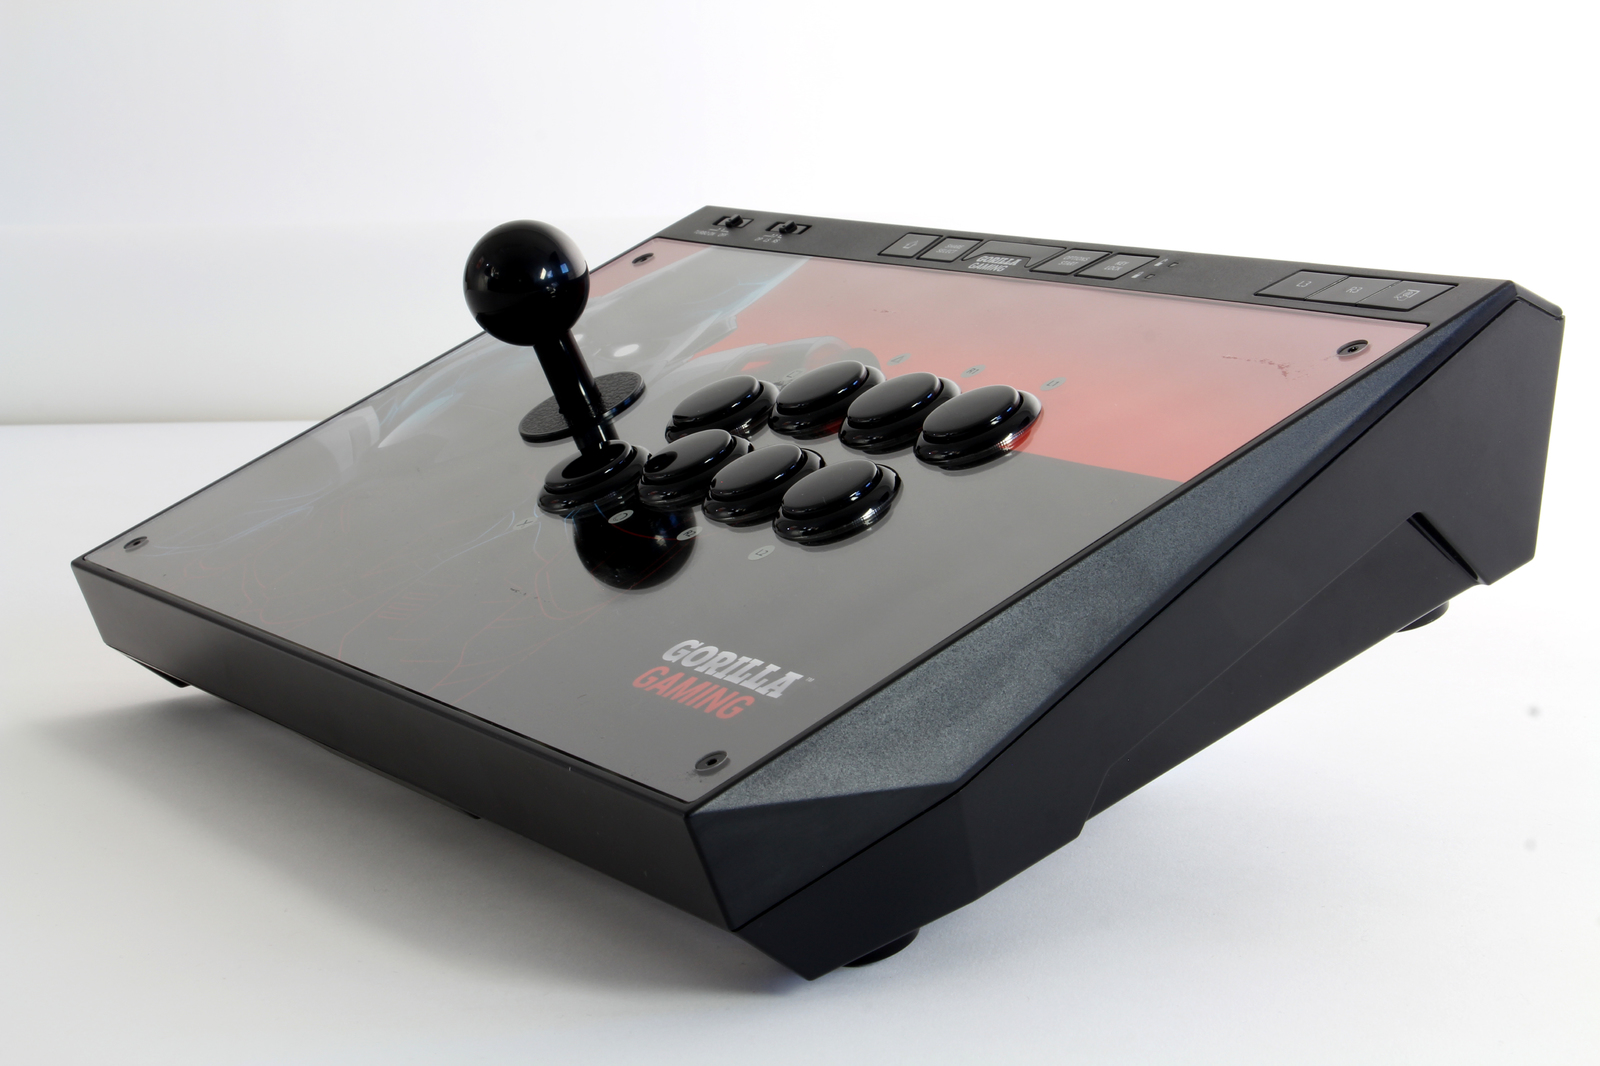 Gorilla Gaming Pro Arcade Fight Stick Ps4 Ps3 Pc Ps4